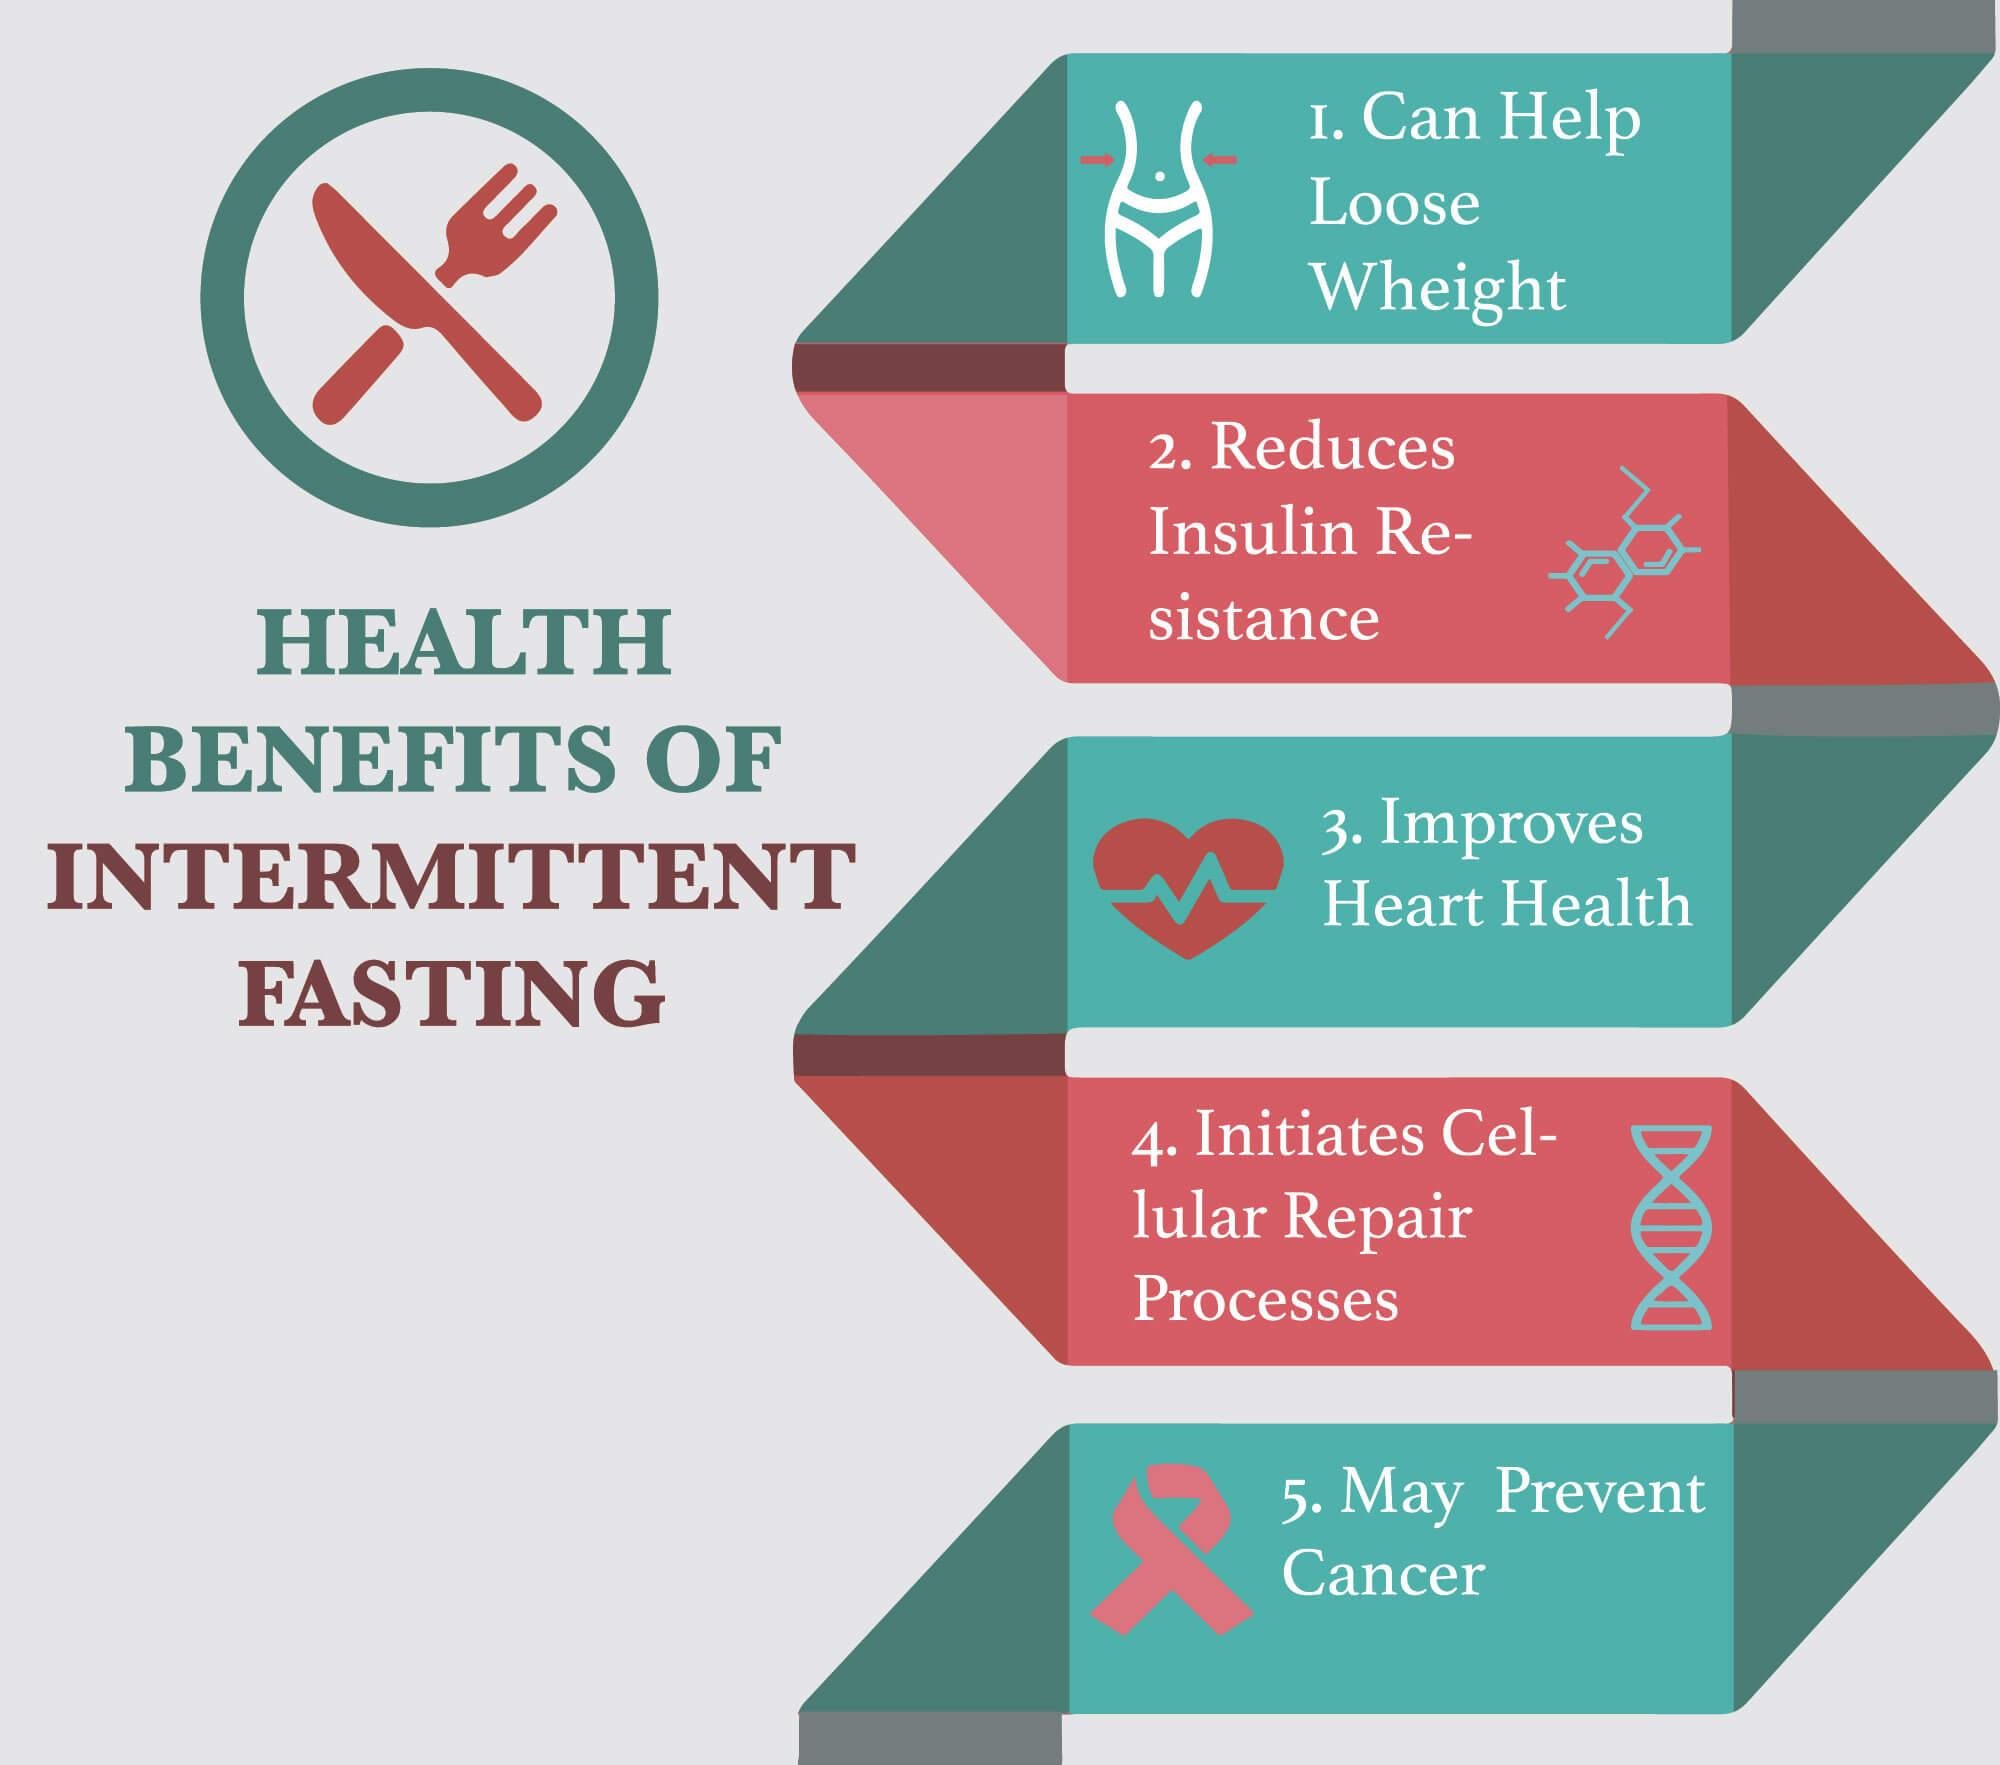 Health Benefits of Intermitten Fasting